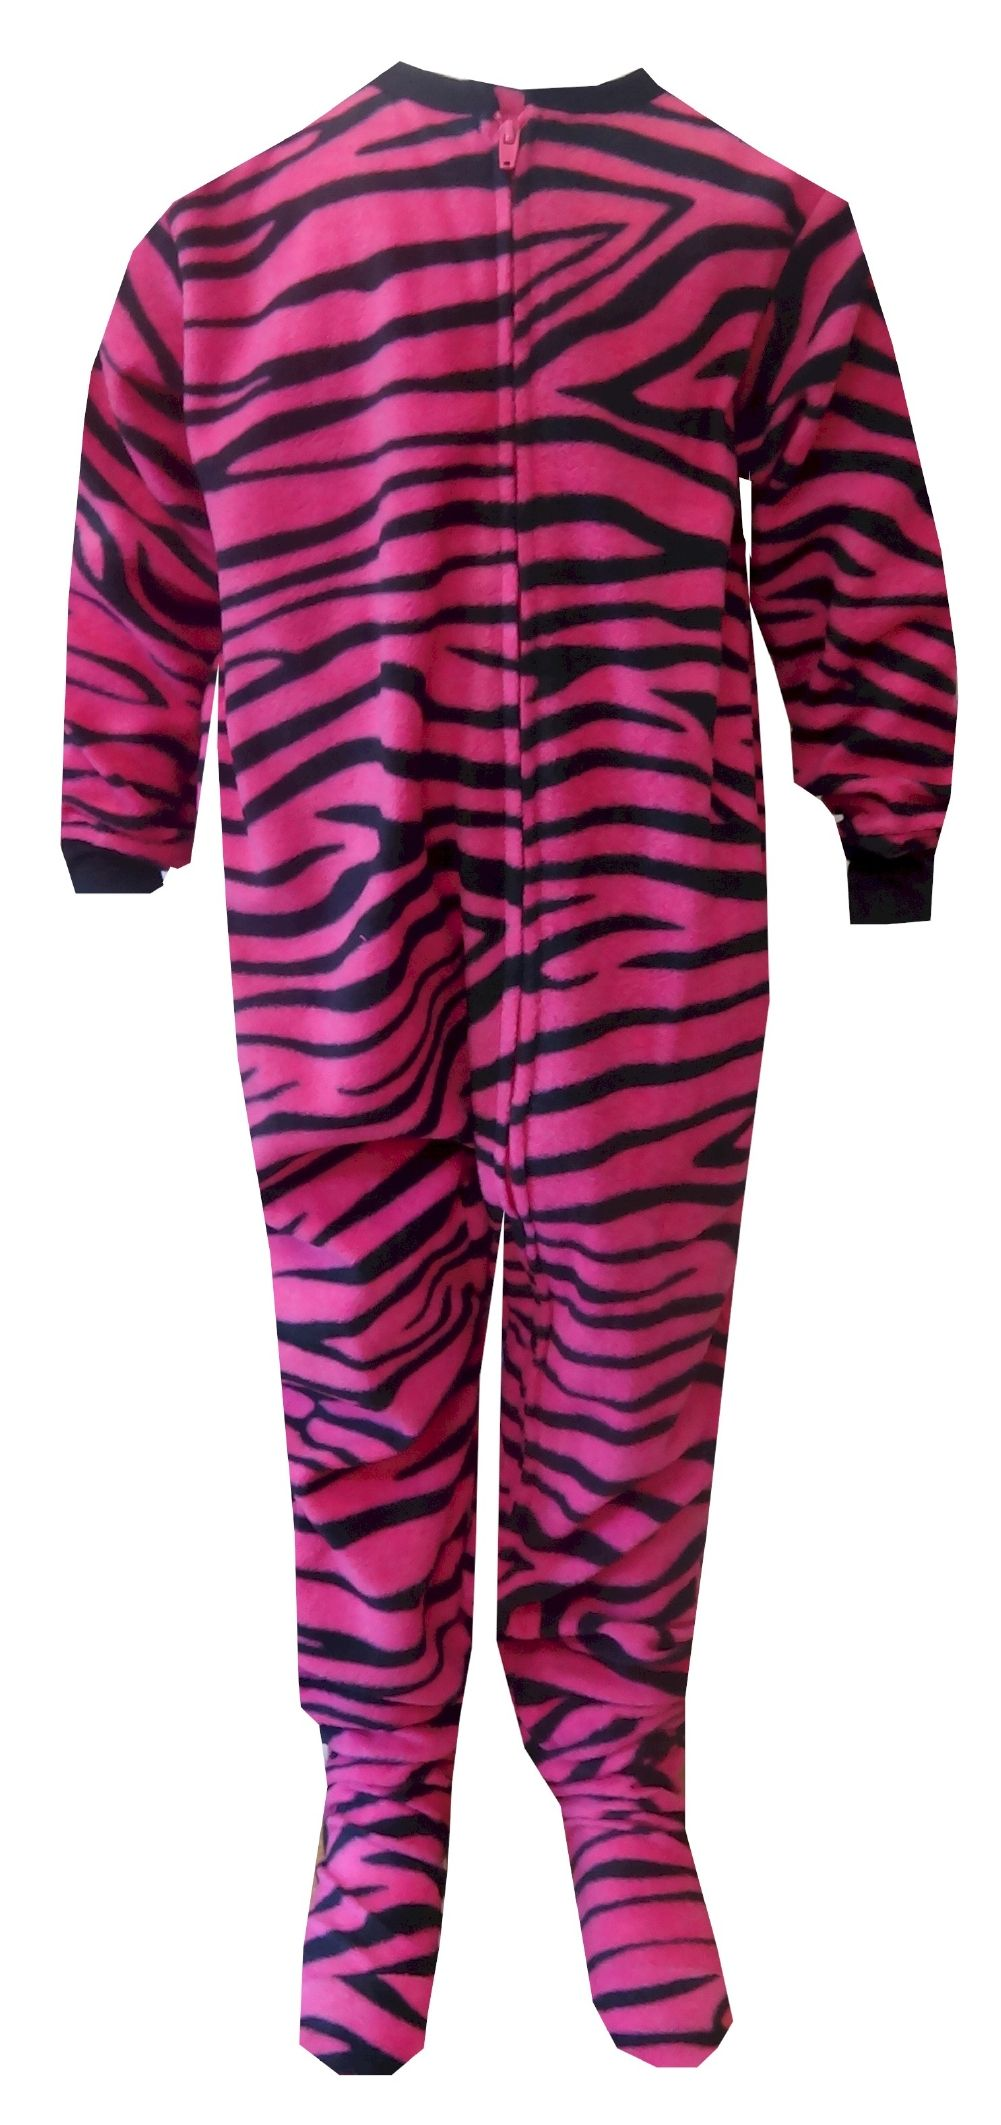 Pink Zebra Fleece One Piece Footie Pajama | Pajamas, Girls and ...